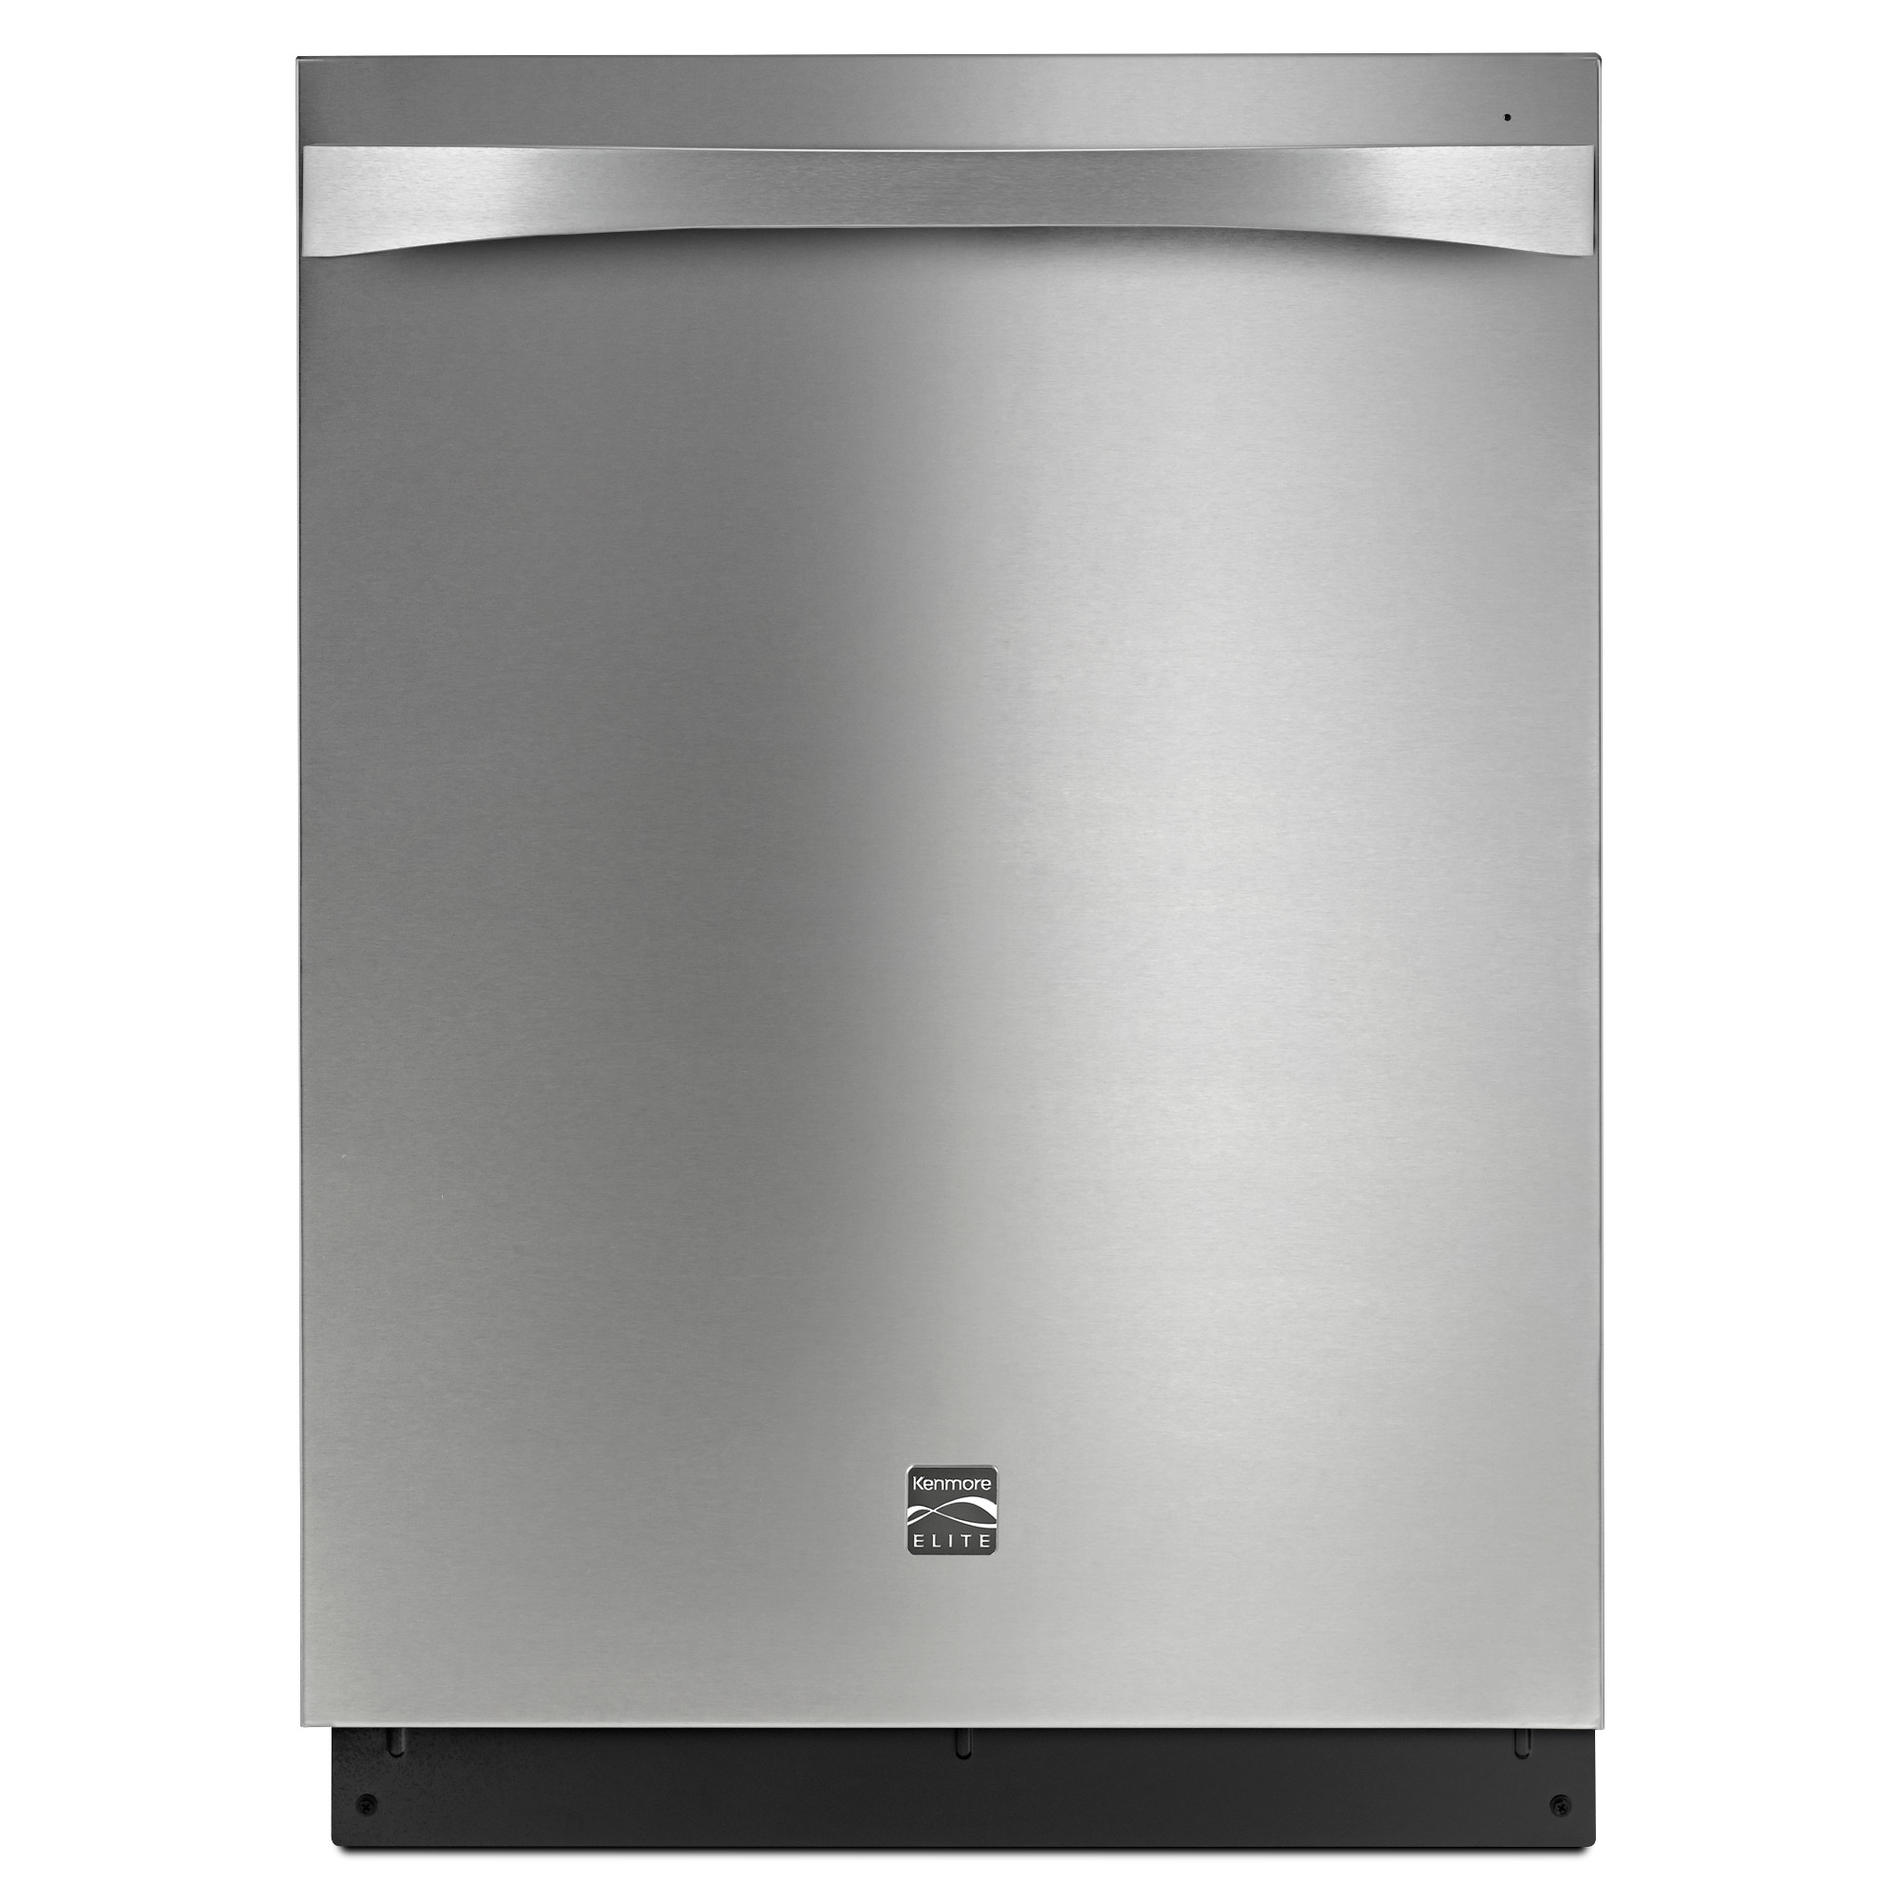 Kenmore Elite 14753 Built In Dishwasher With Turbo Zone 360 Power